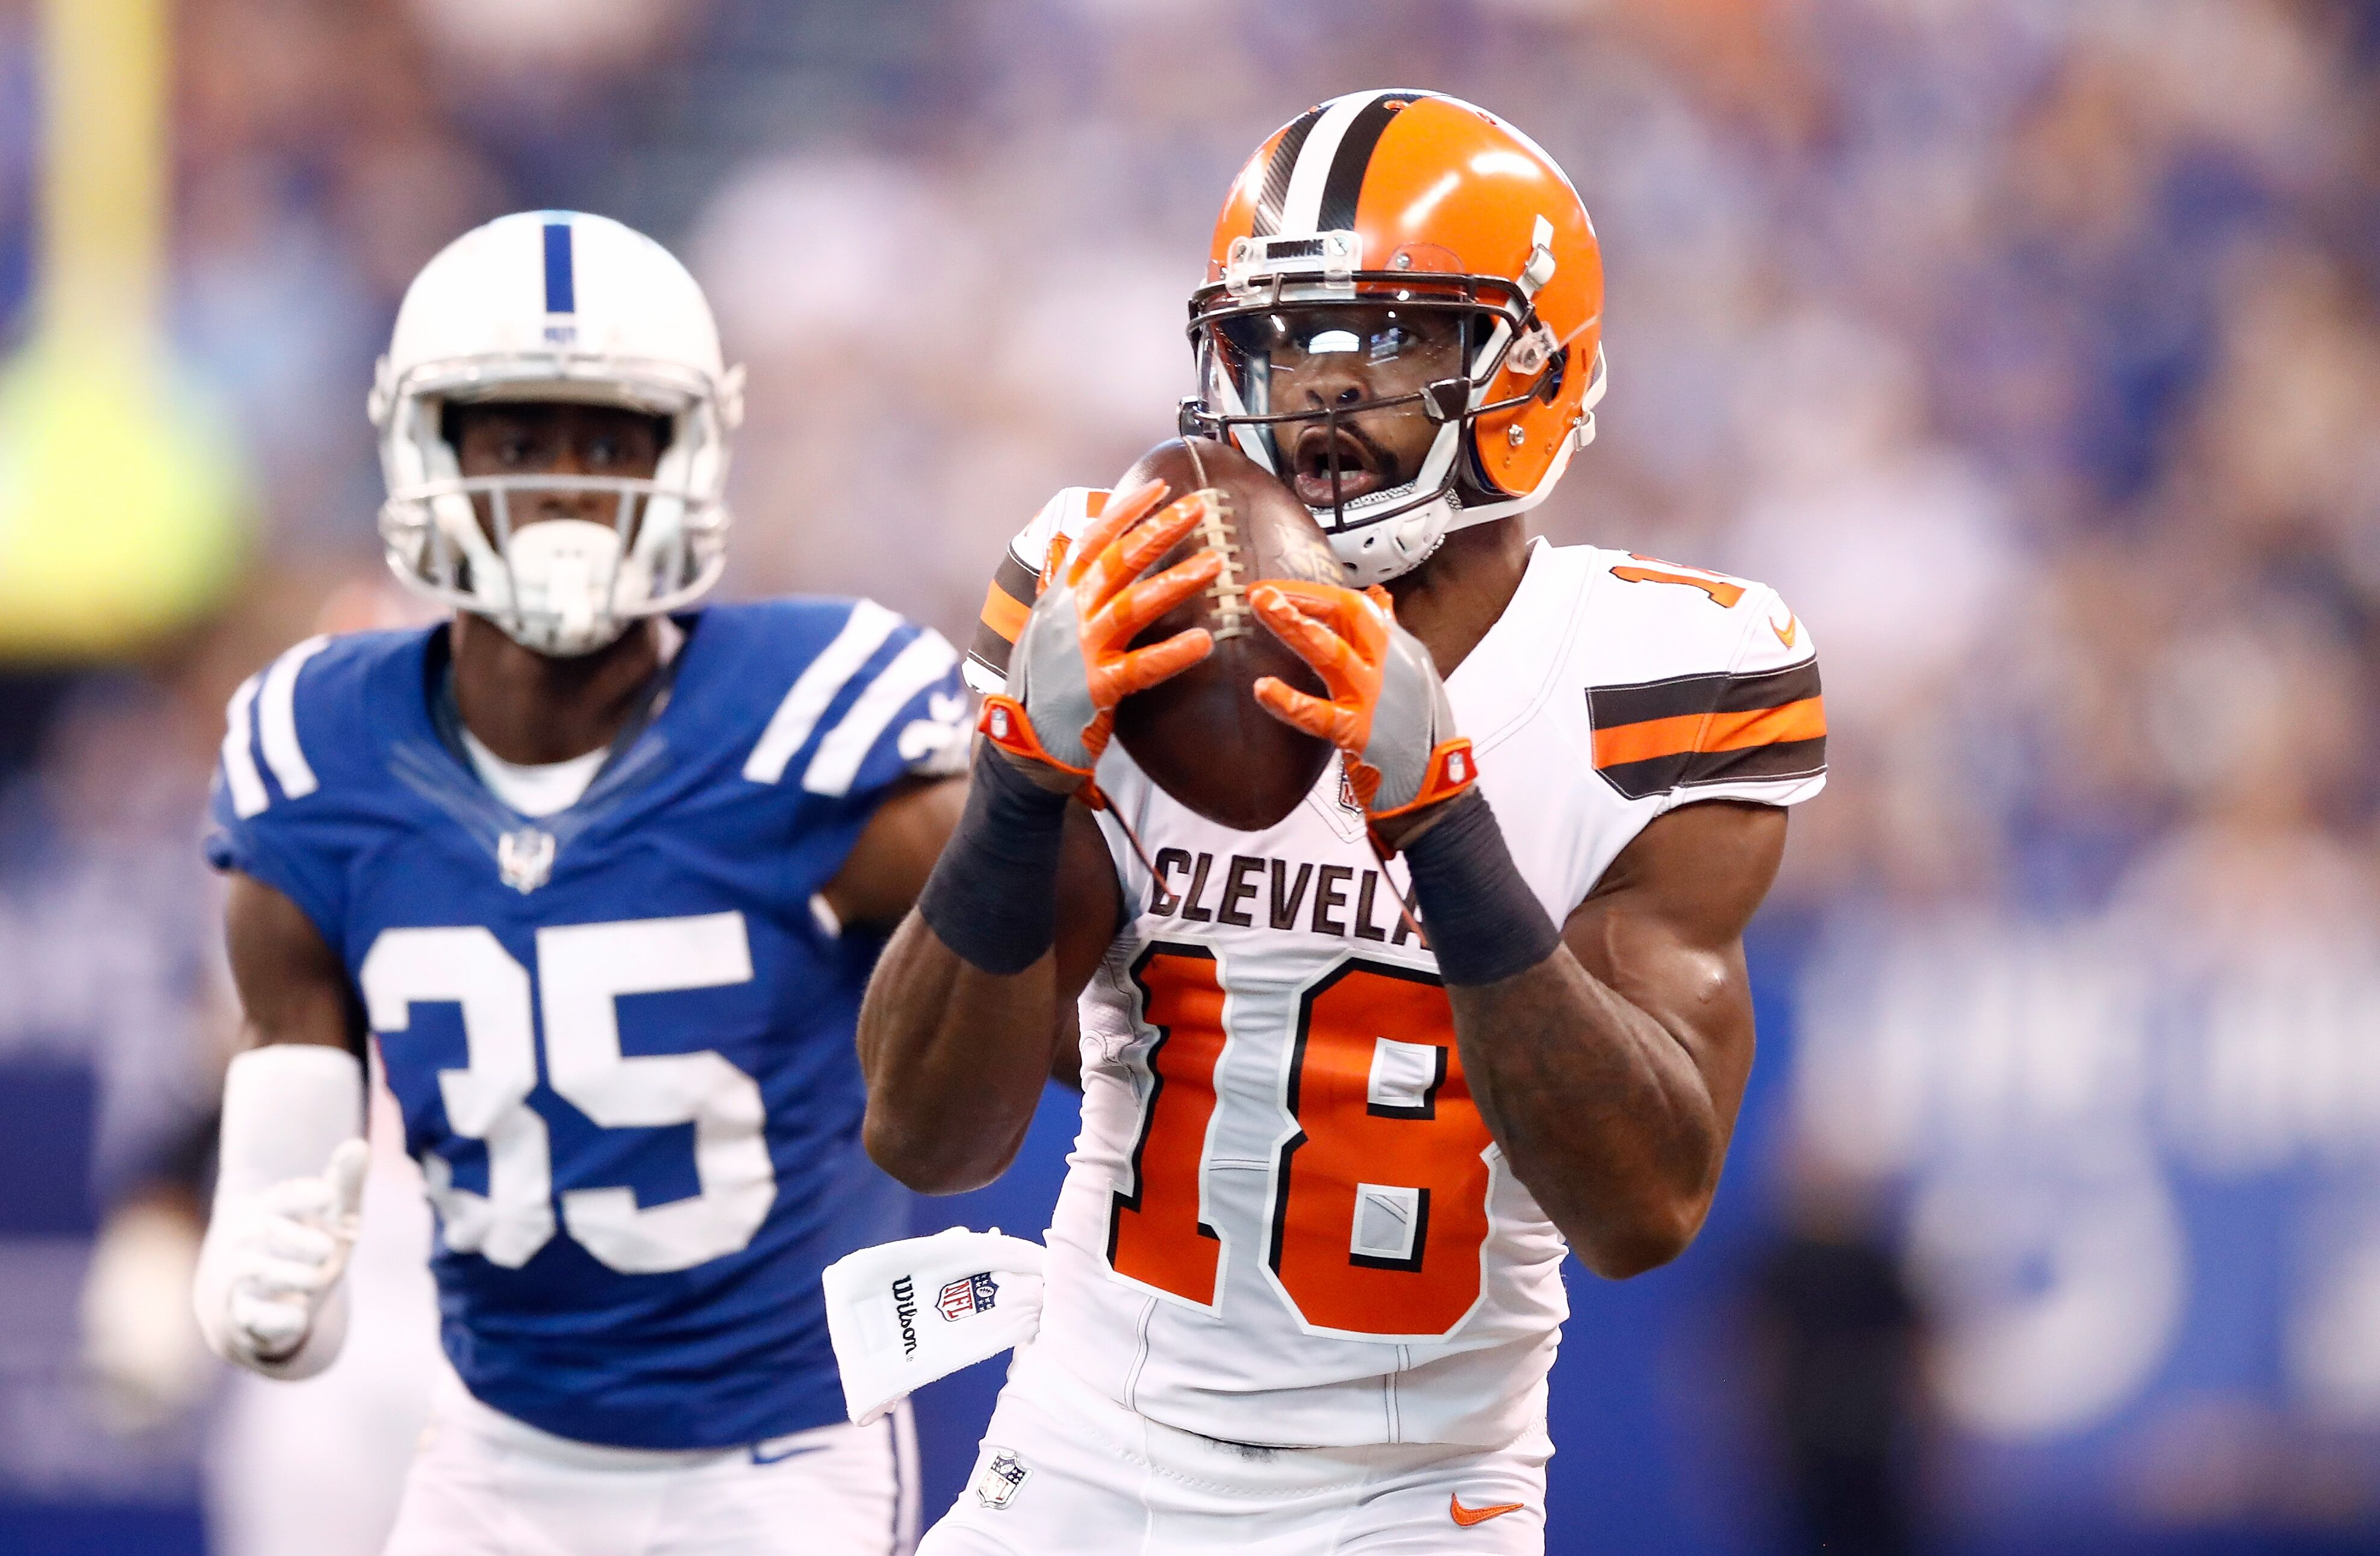 853087150-cleveland-browns-v-indianapolis-colts.jpg